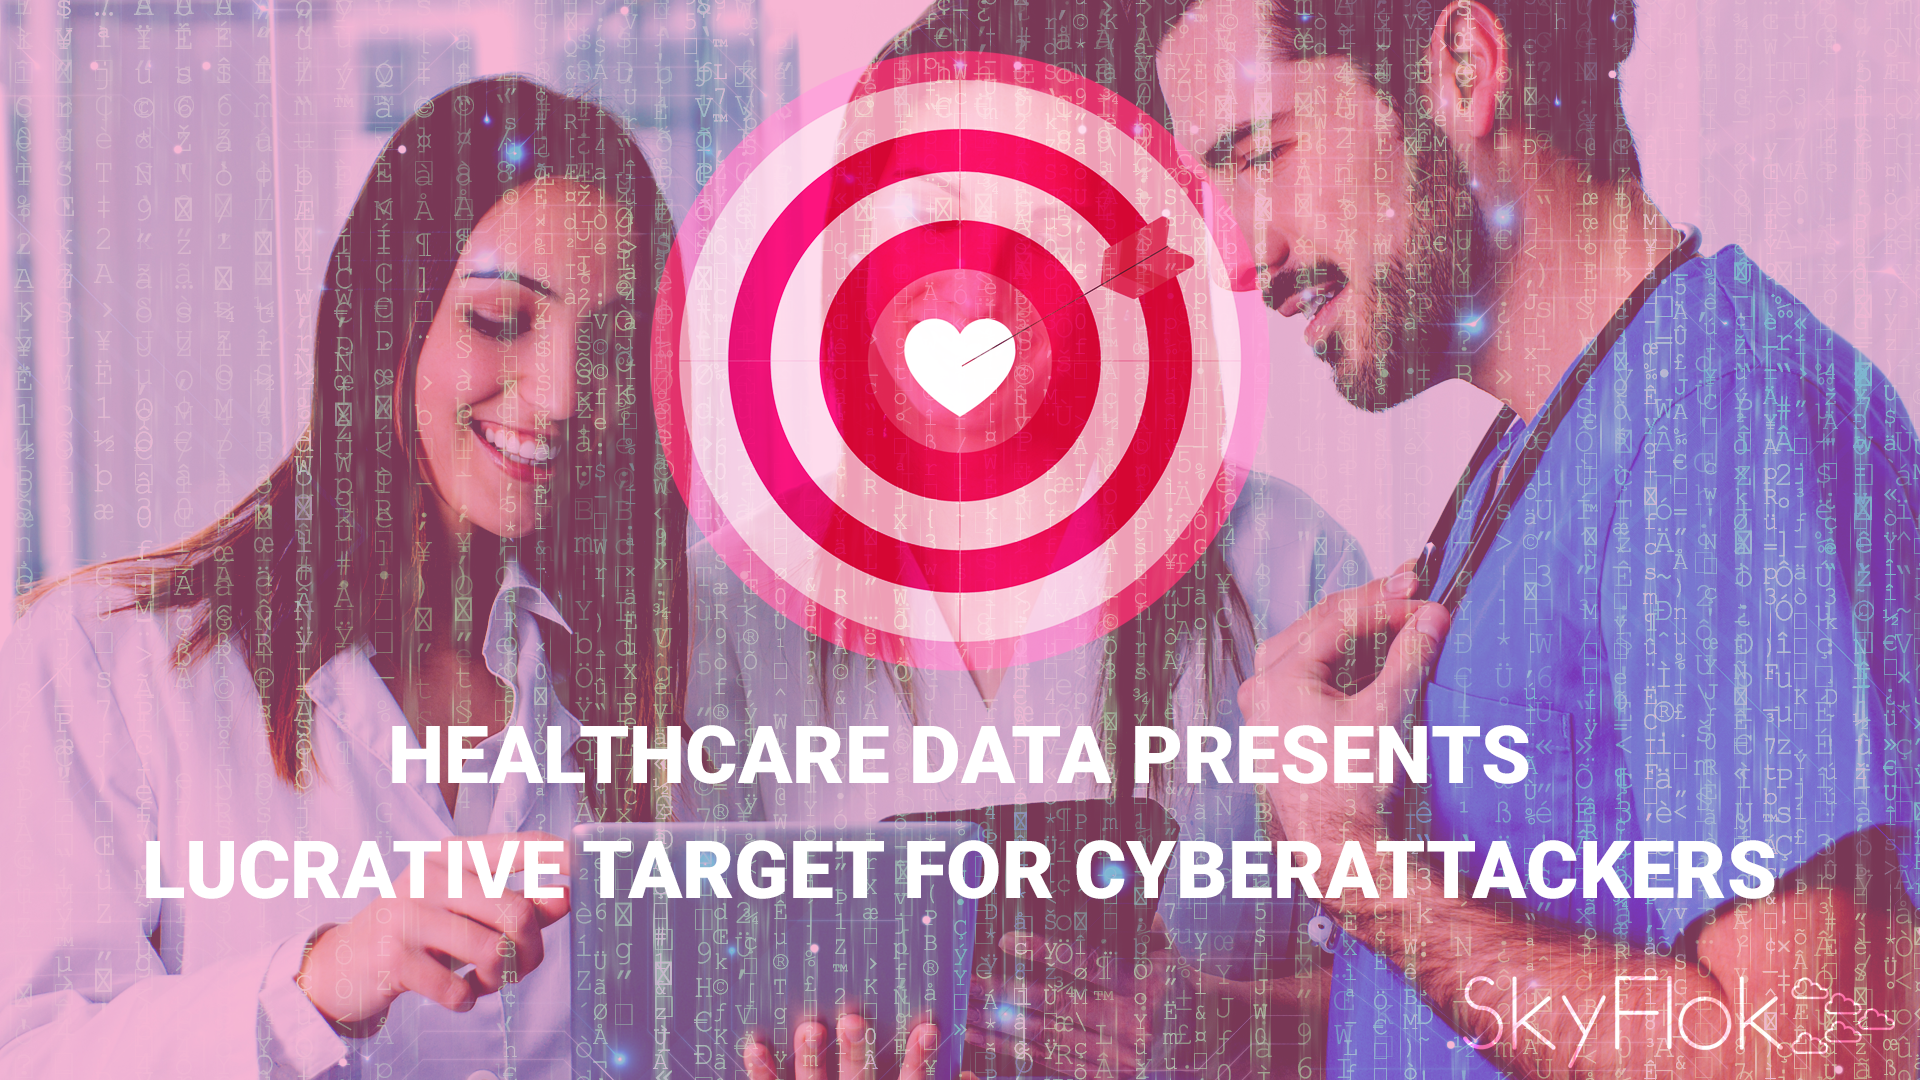 Healthcare Data Presents Lucrative Target for Cyberattackers